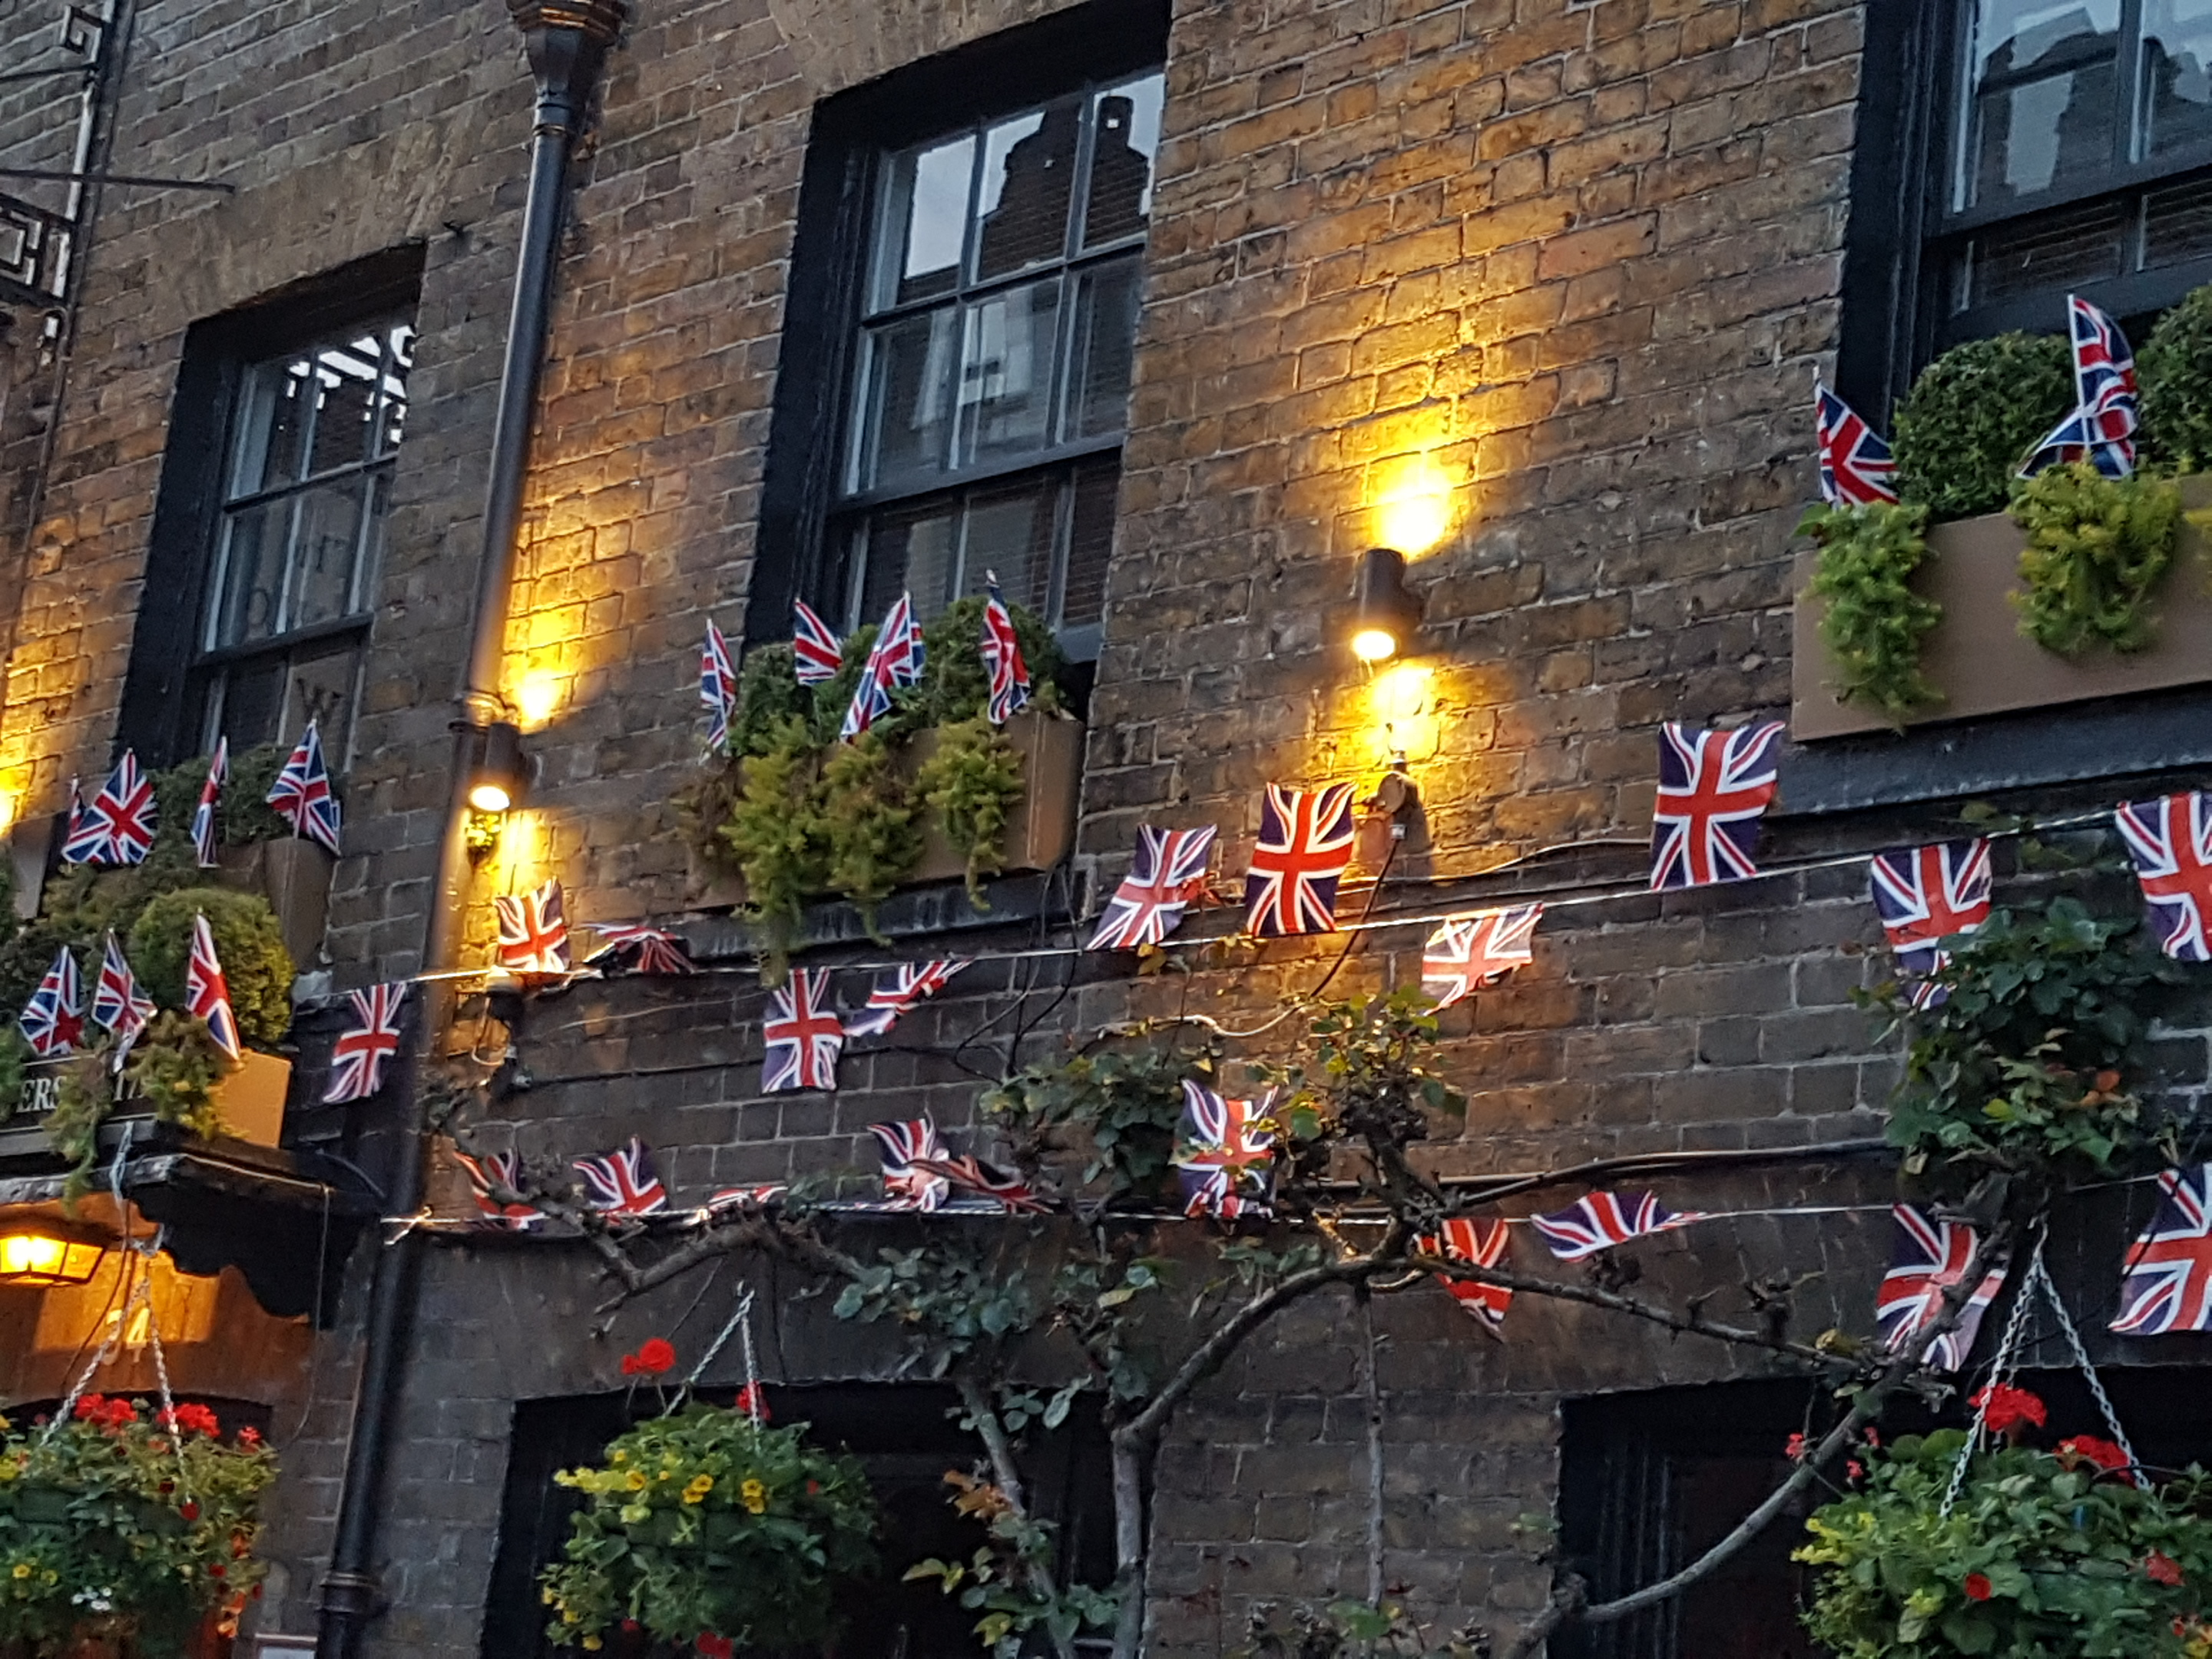 The Two Brewers pub in Windsor covered in flags